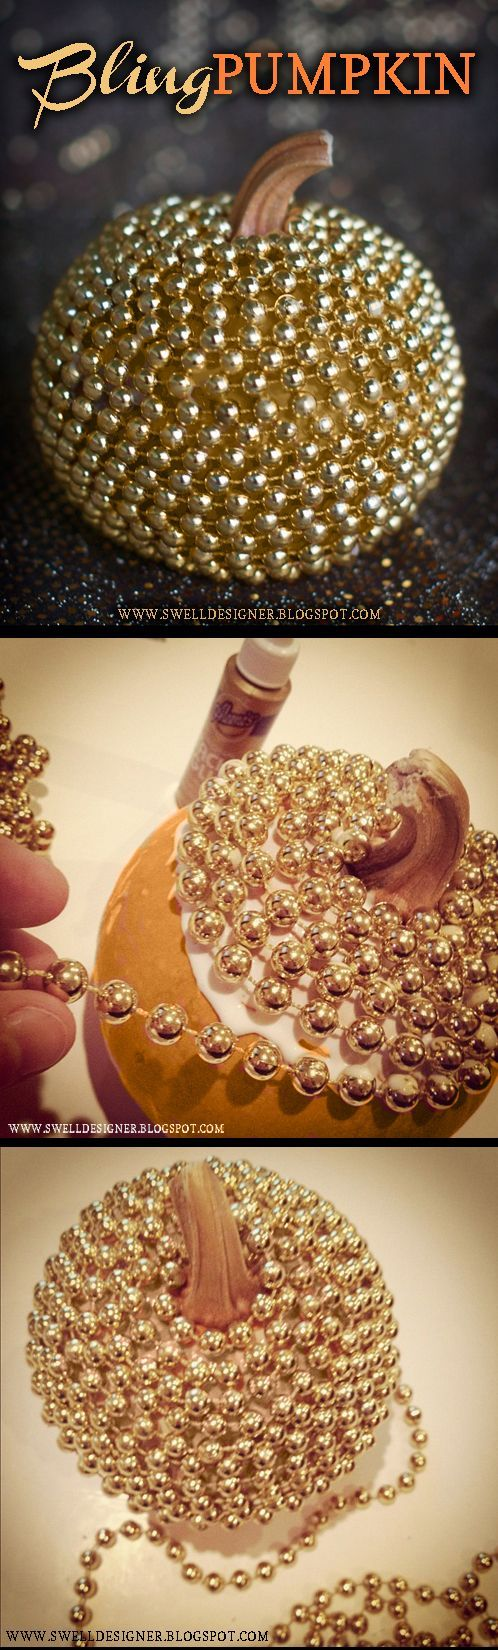 Bling Pumpkin DIY: tacky glue, gold paint, and mardi gras beads (or small Christmas bead garland) ~ Halloween decor tutorial | from The Swell Designer